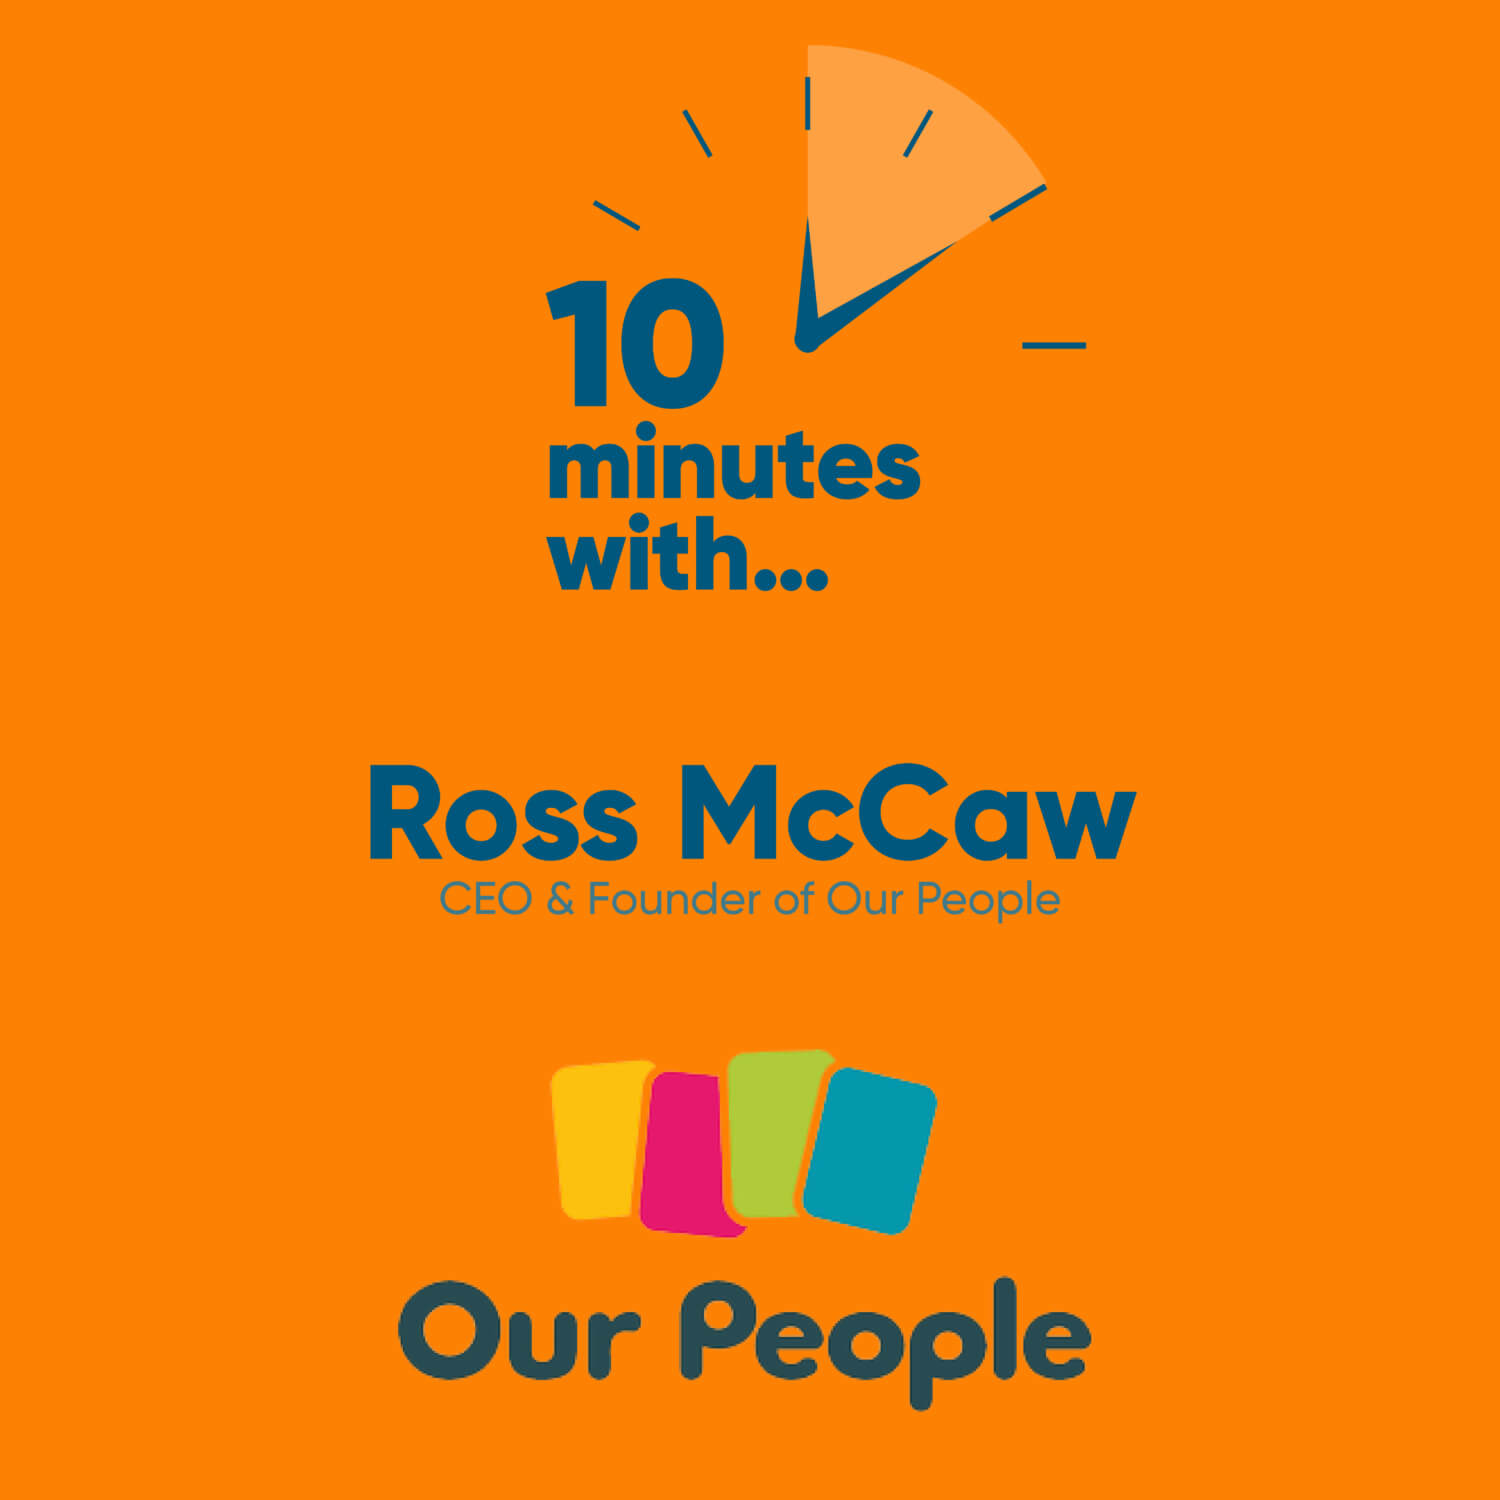 Ten Minutes With Ross McCaw, Founder & CEO of Our People